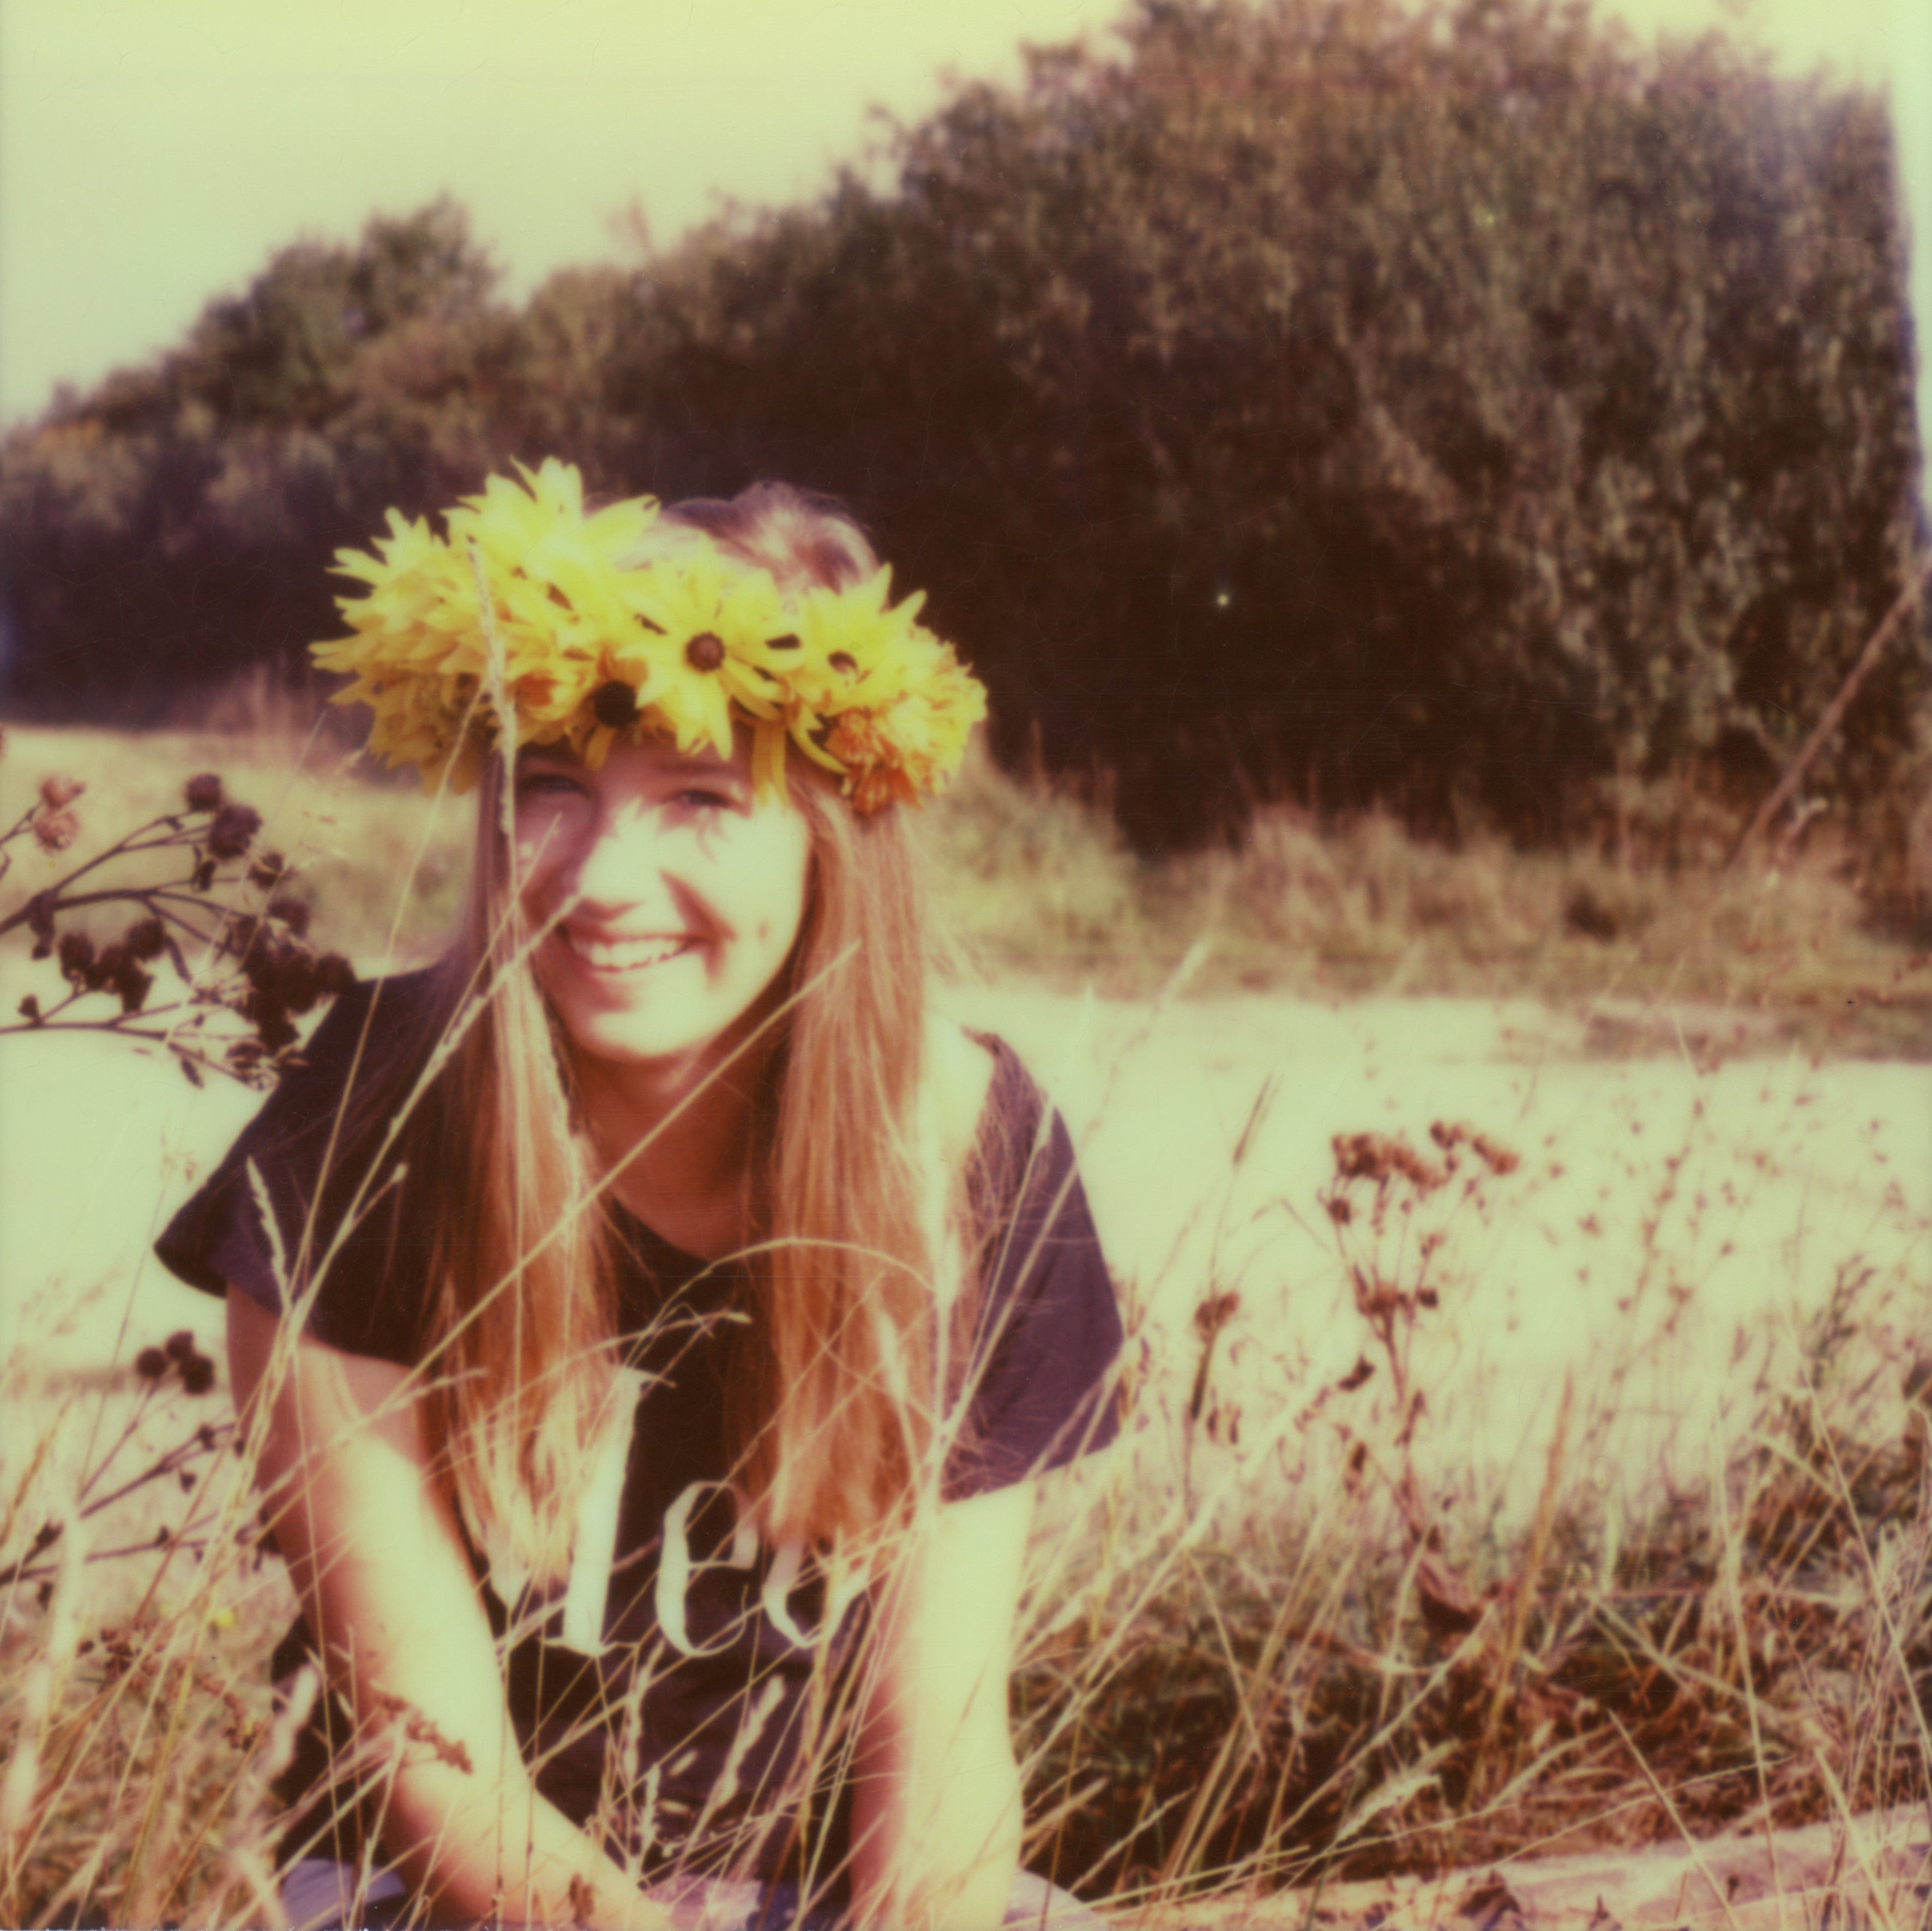 Invaded by Love - Contemporary, Figurative, Woman, Polaroid, Photograph